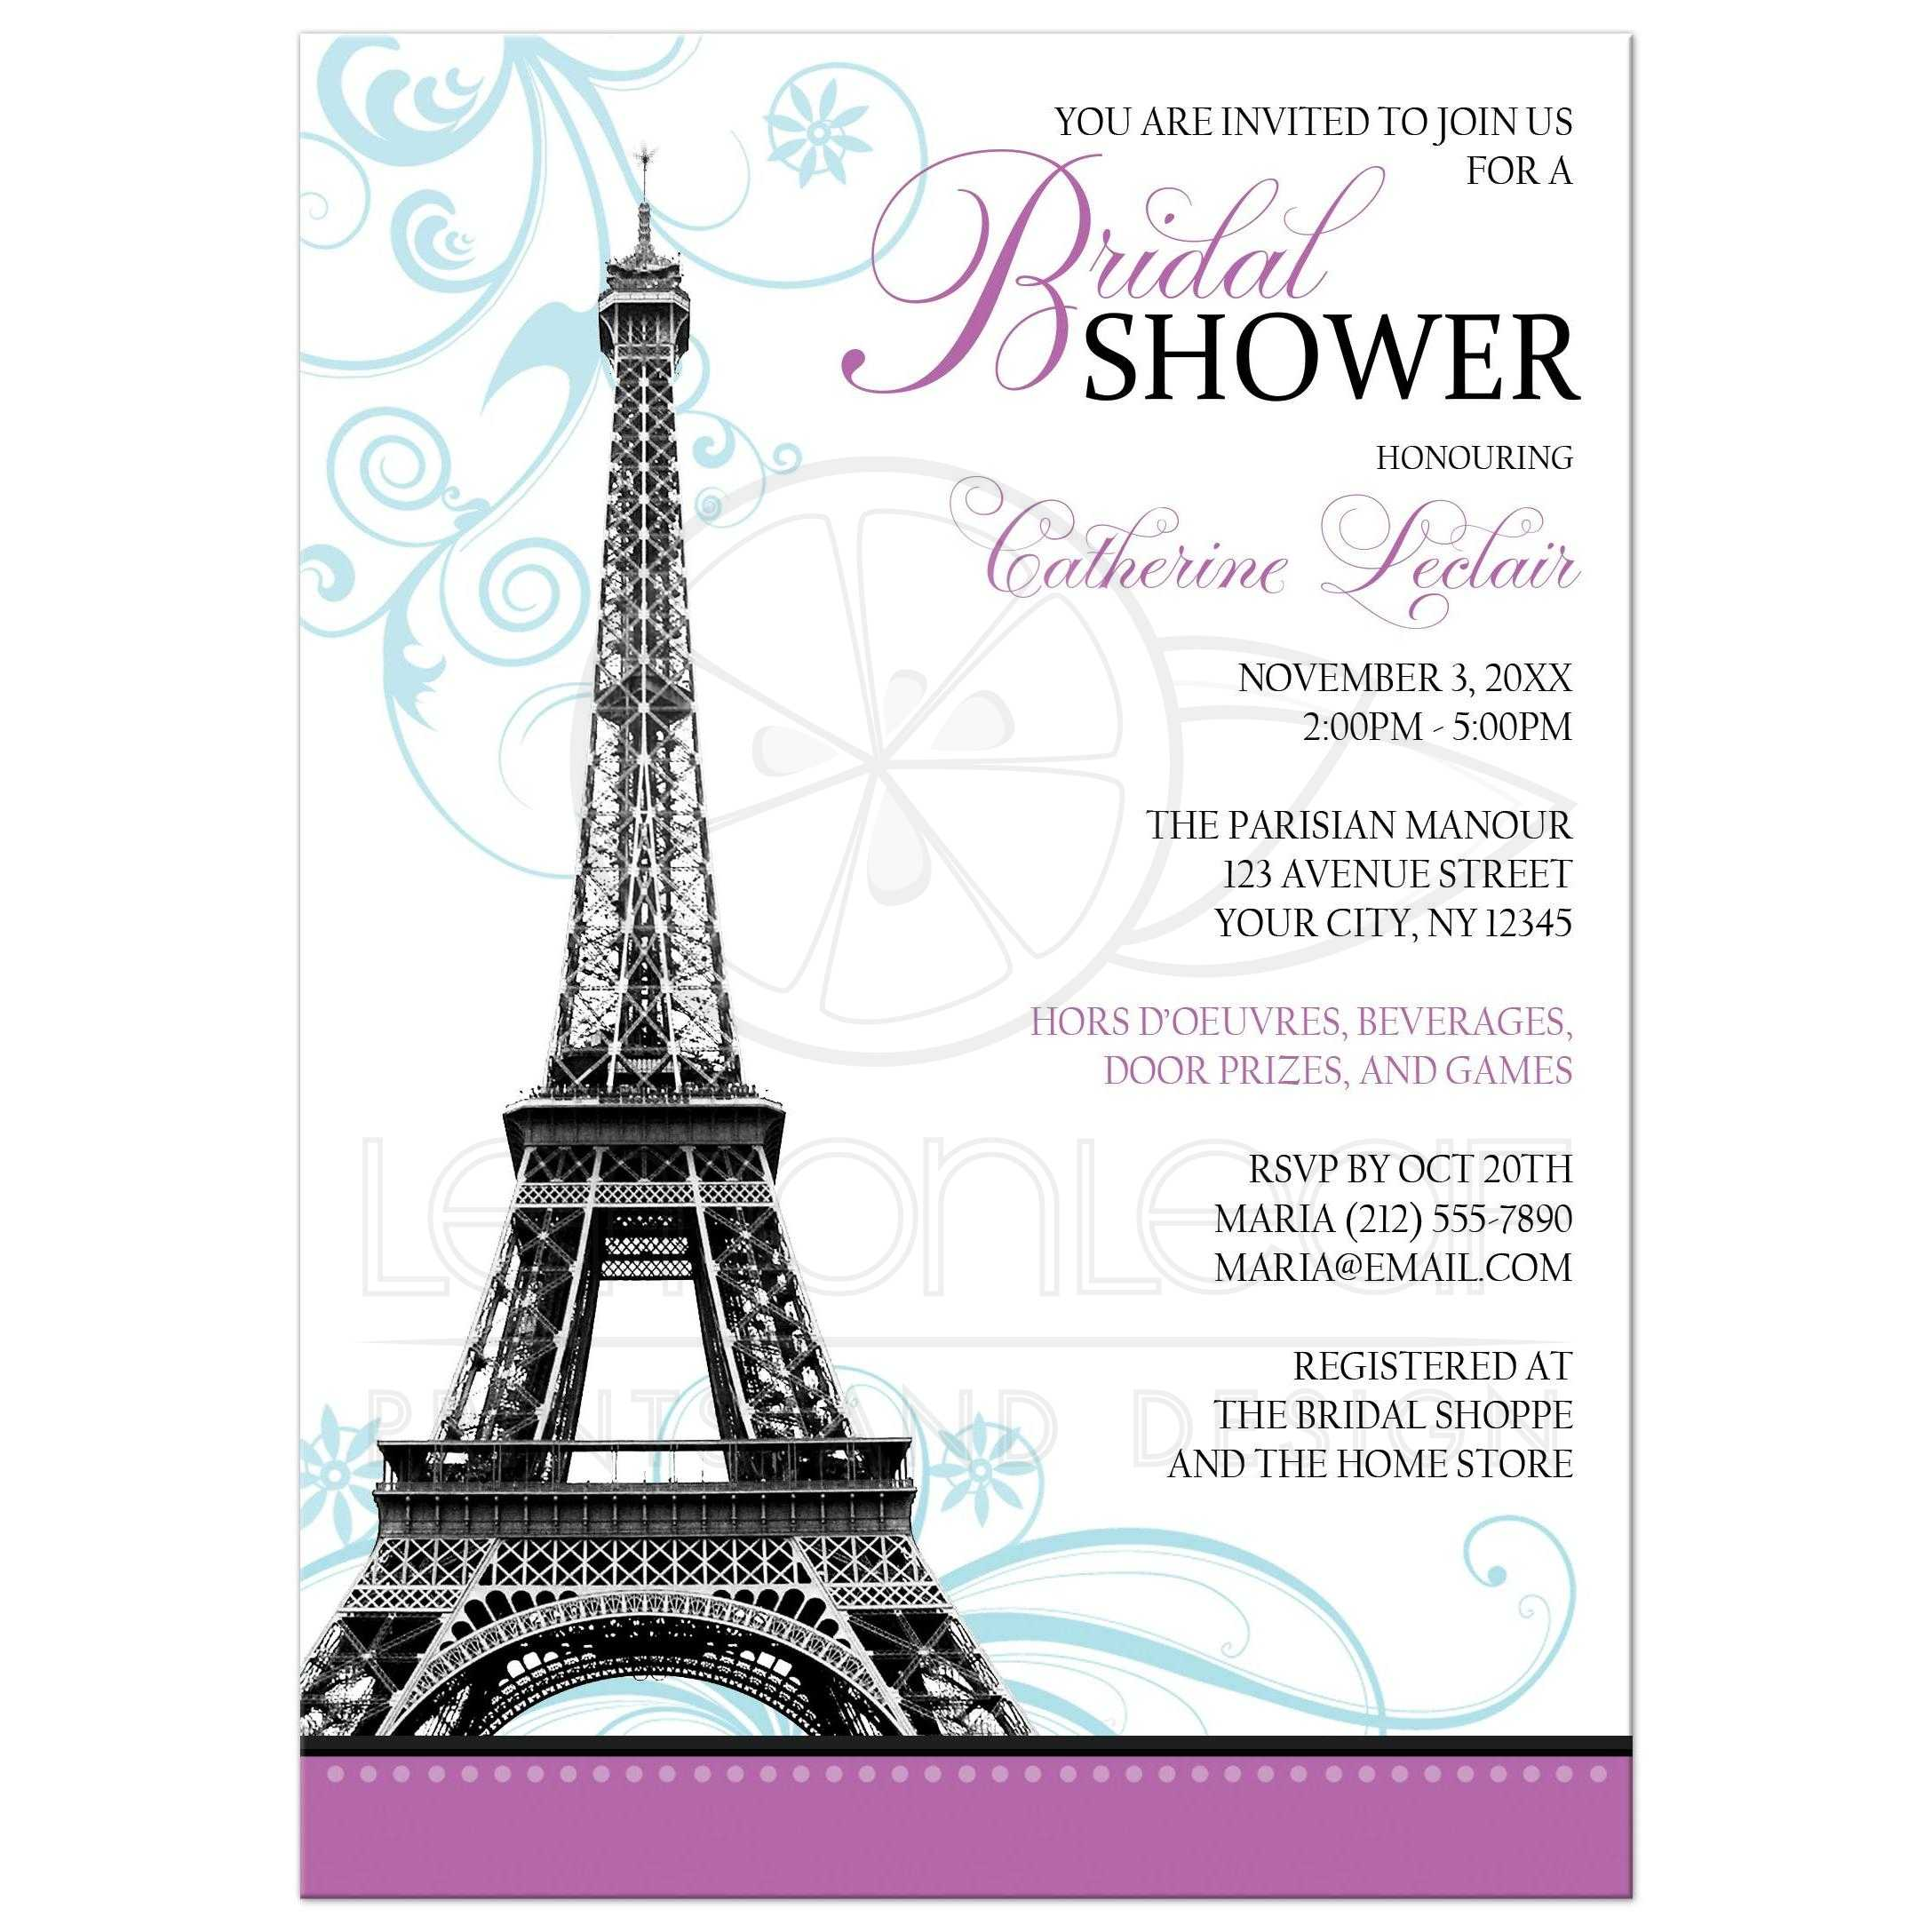 Bridal Shower Invitations - Modern Eiffel Tower Parisian